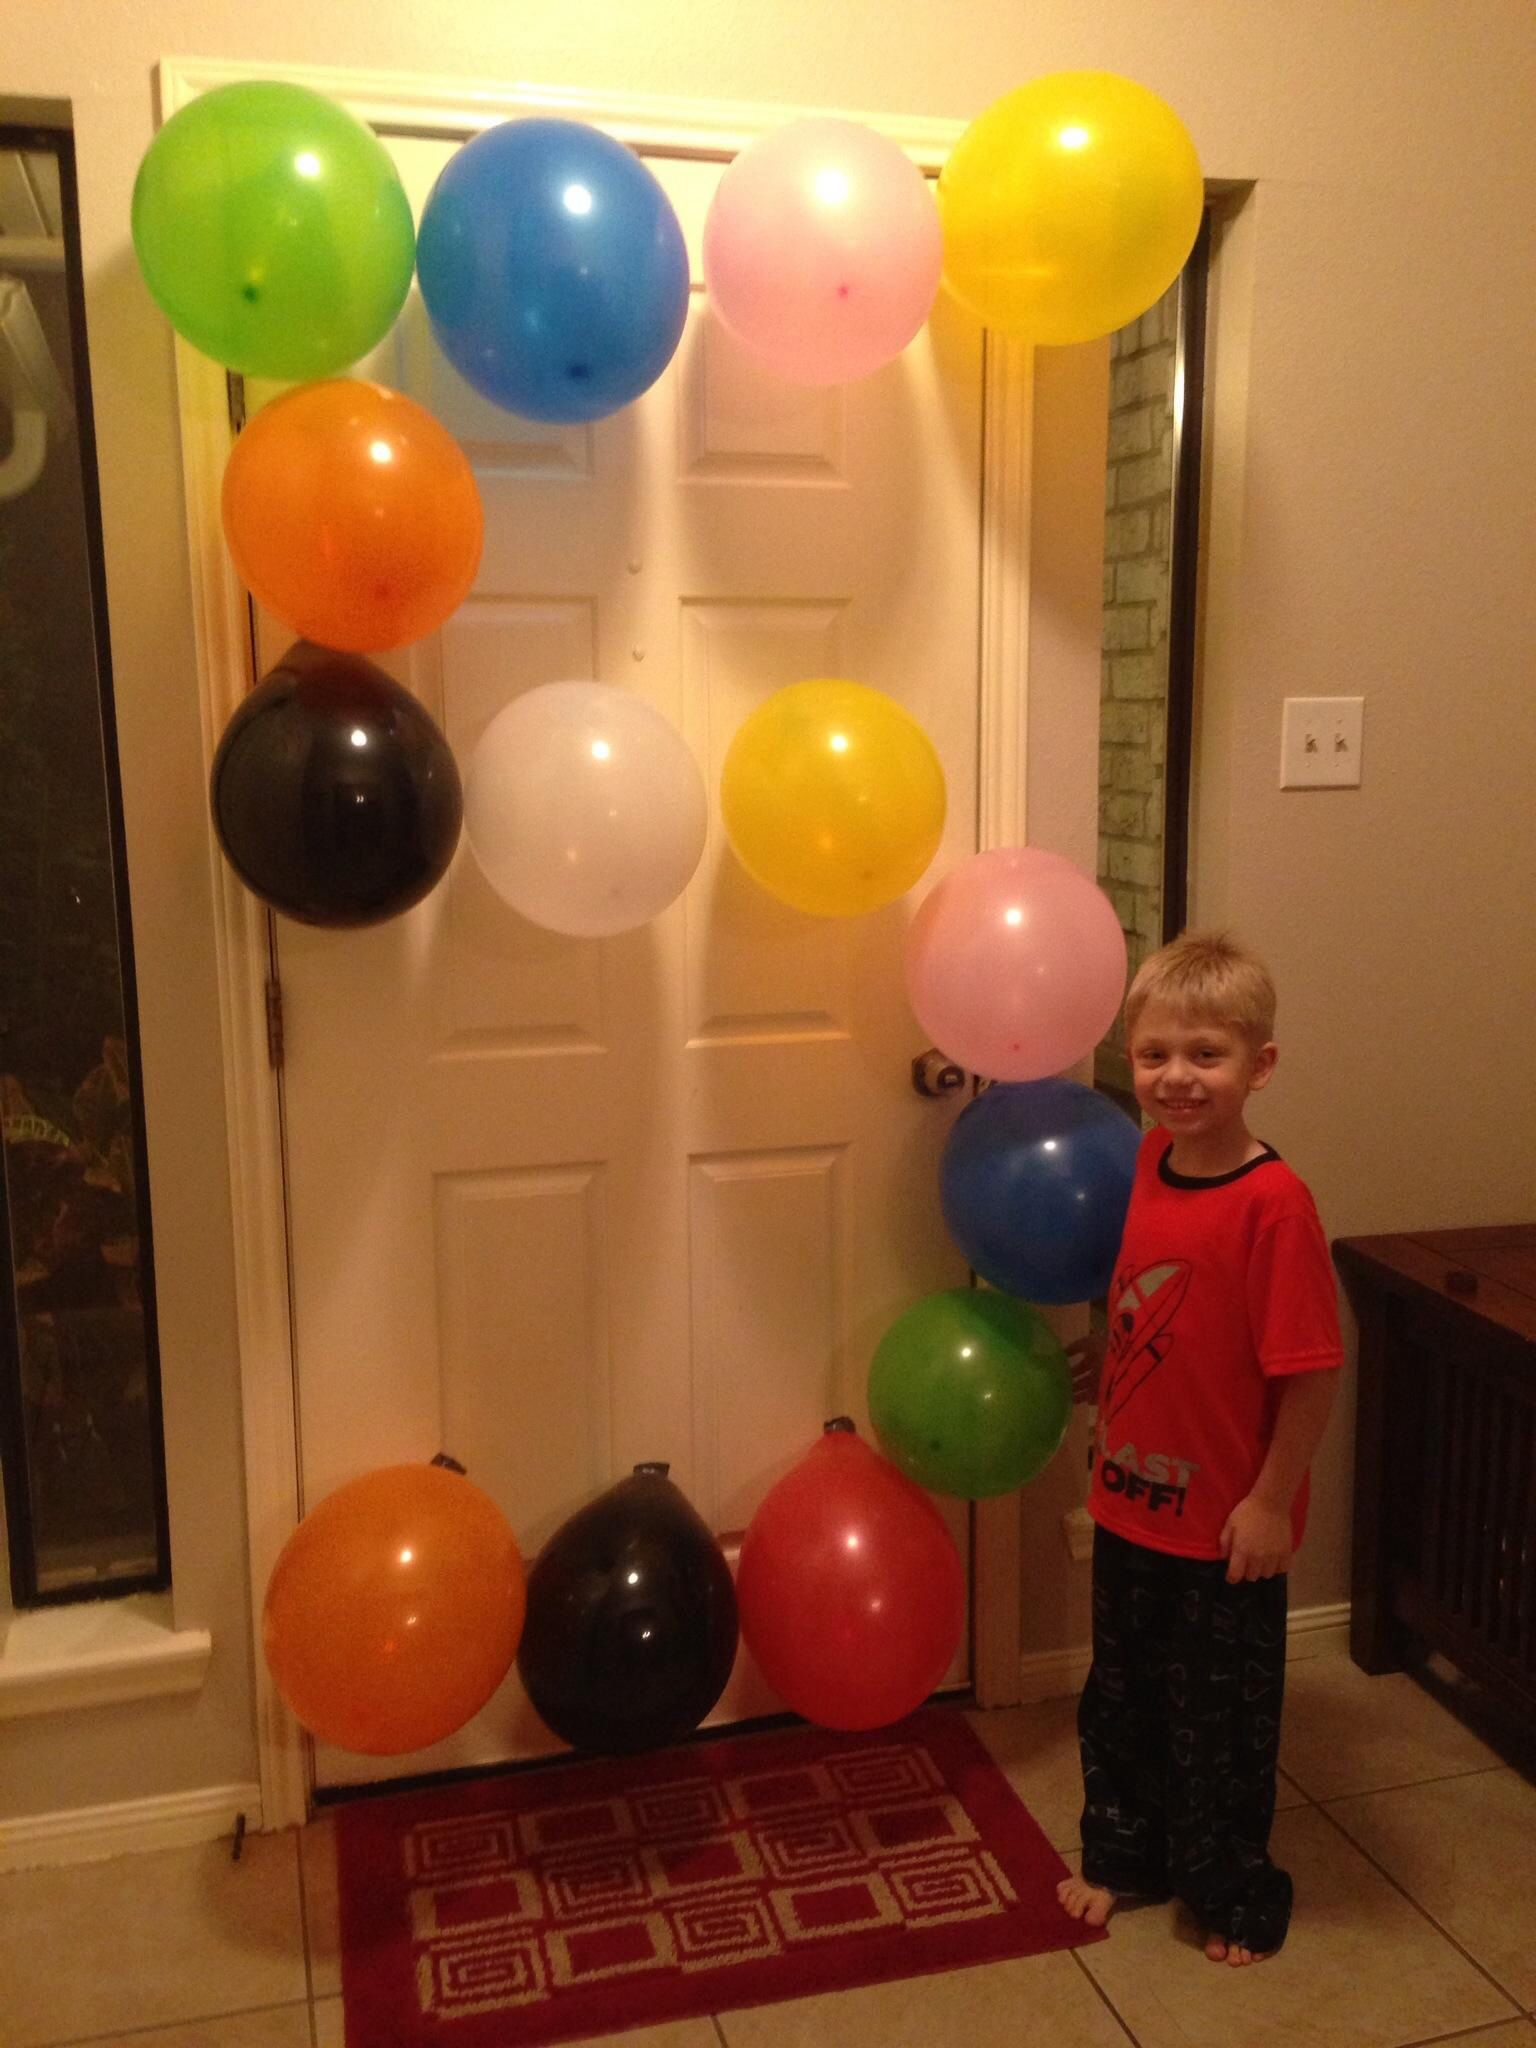 Son Turned 5 Years Old Take A Picture With Balloons Shaped Into The Number Birthday Party Balloon Birthday Traditions Birthday Morning